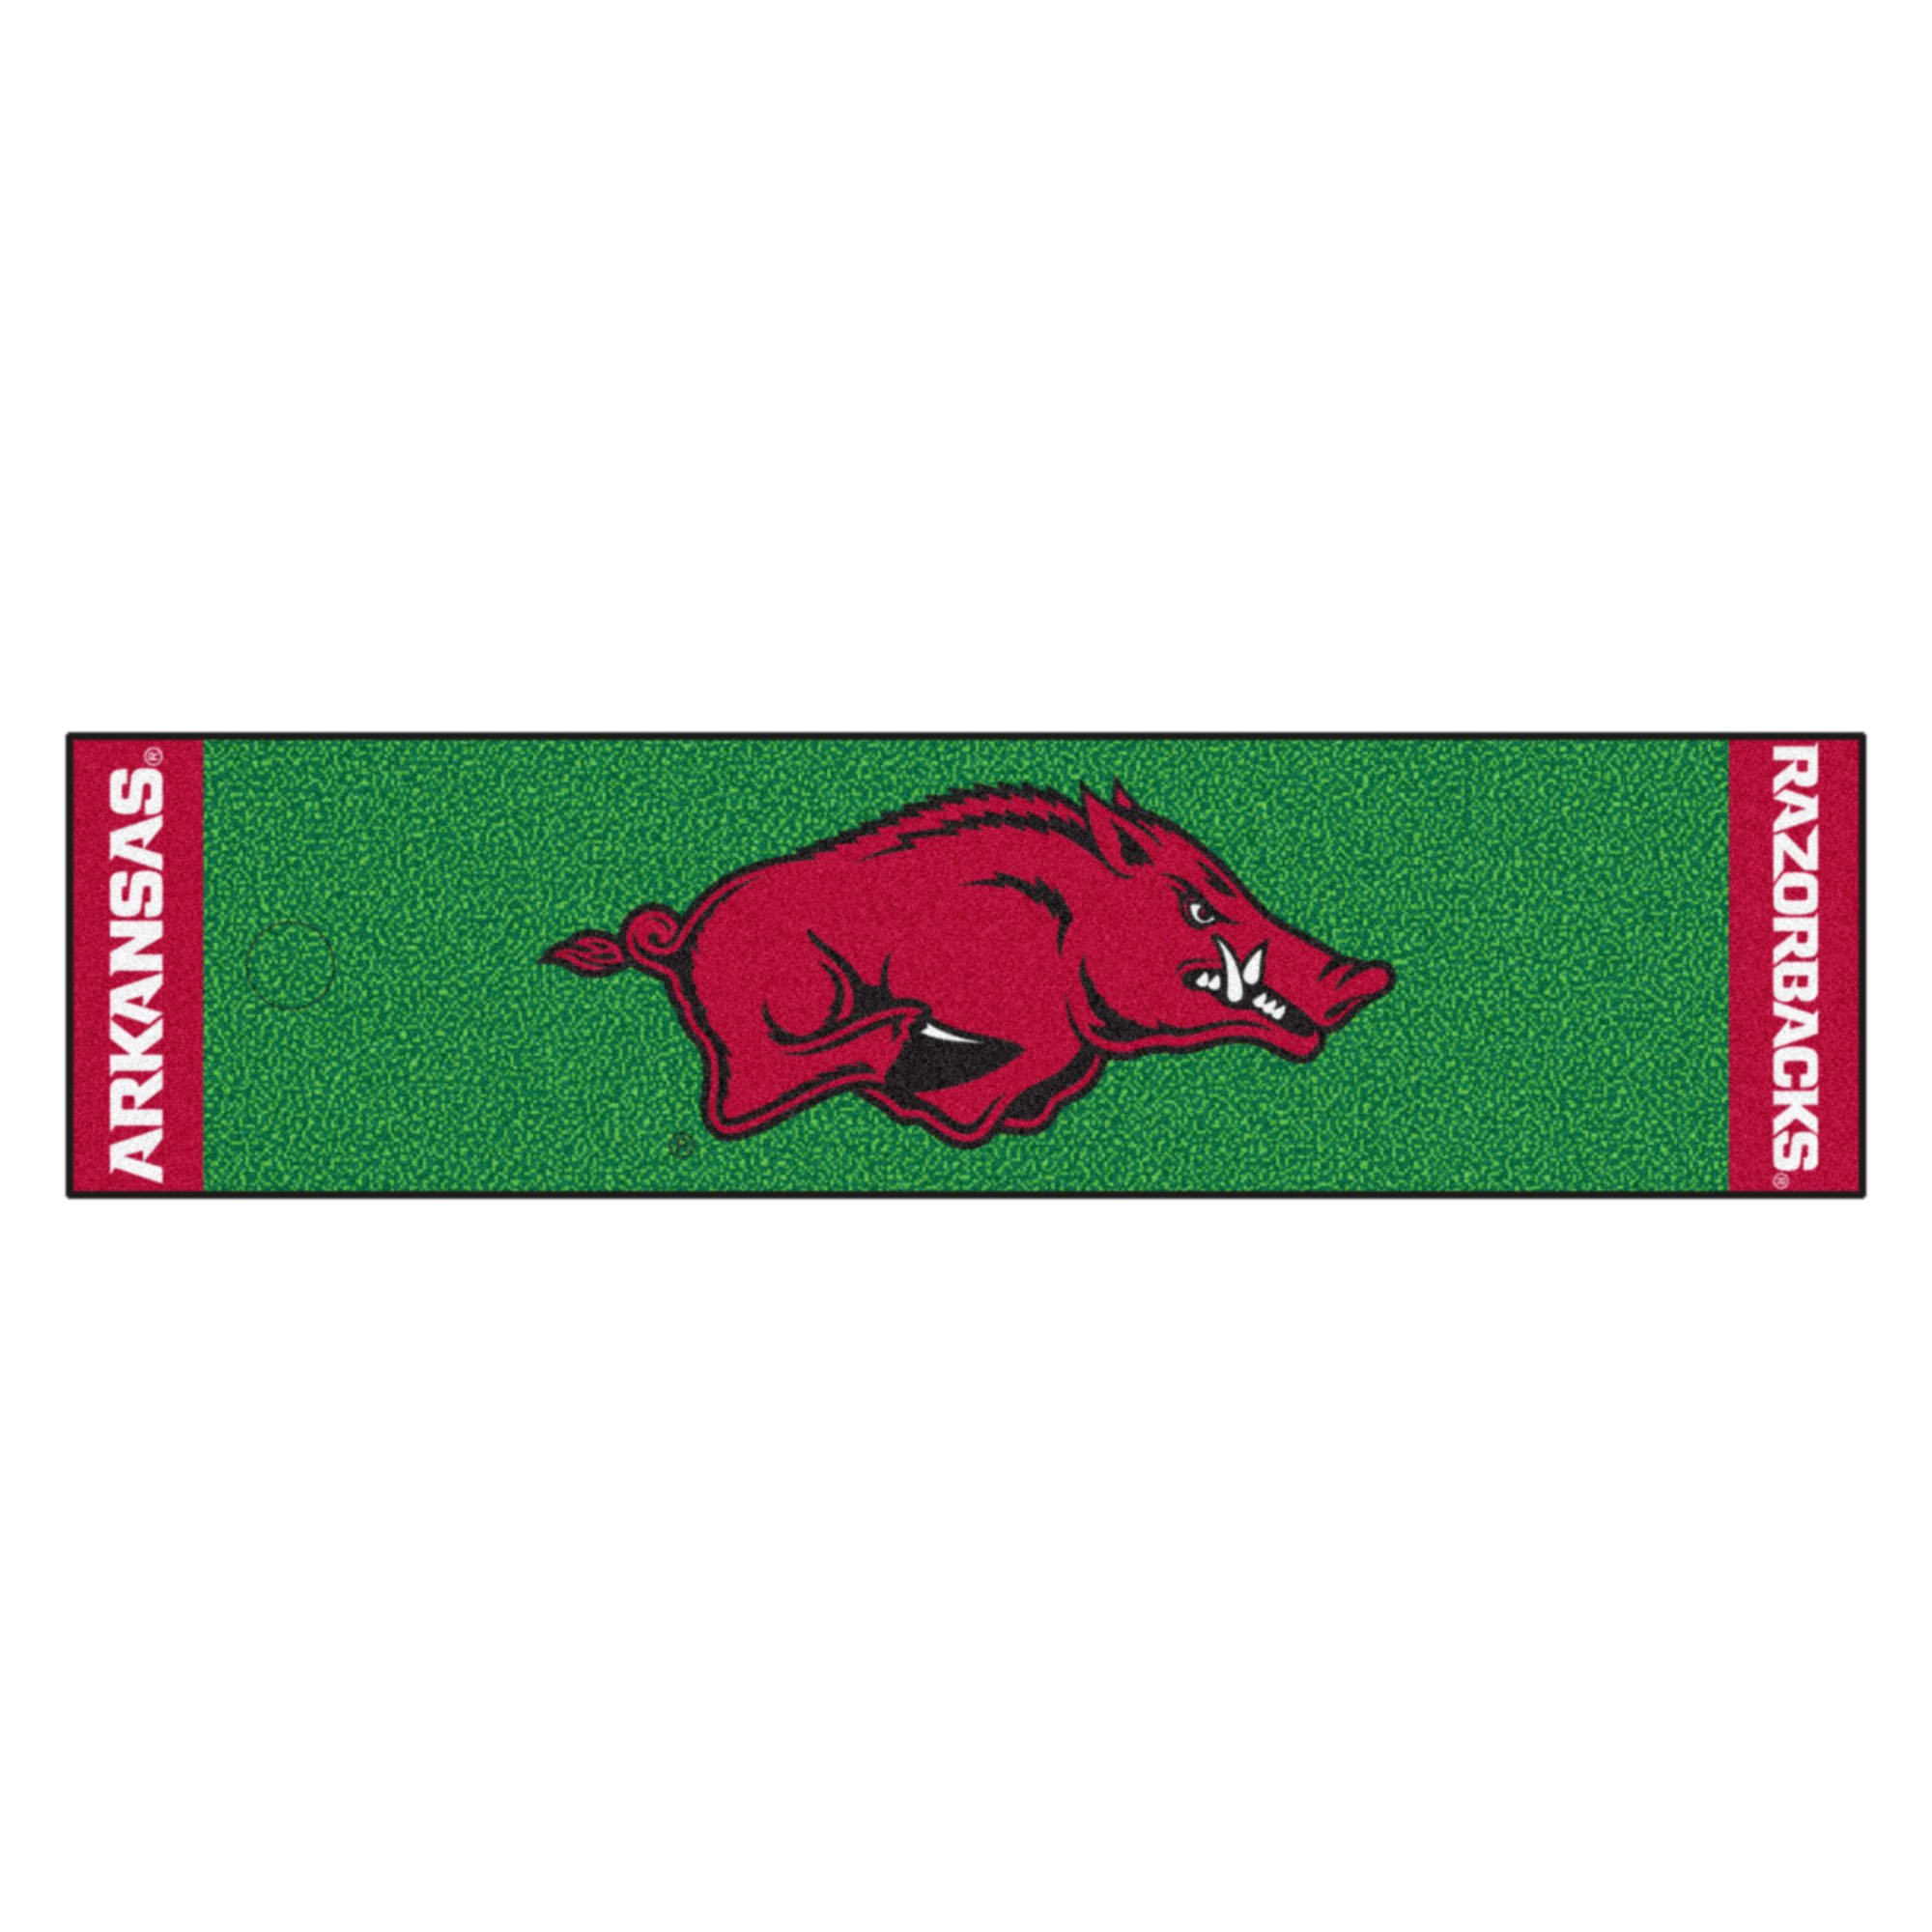 NCAA University of Arkansas Razorbacks Putting Green Mat Golf Accessory by Unknown (Image #1)